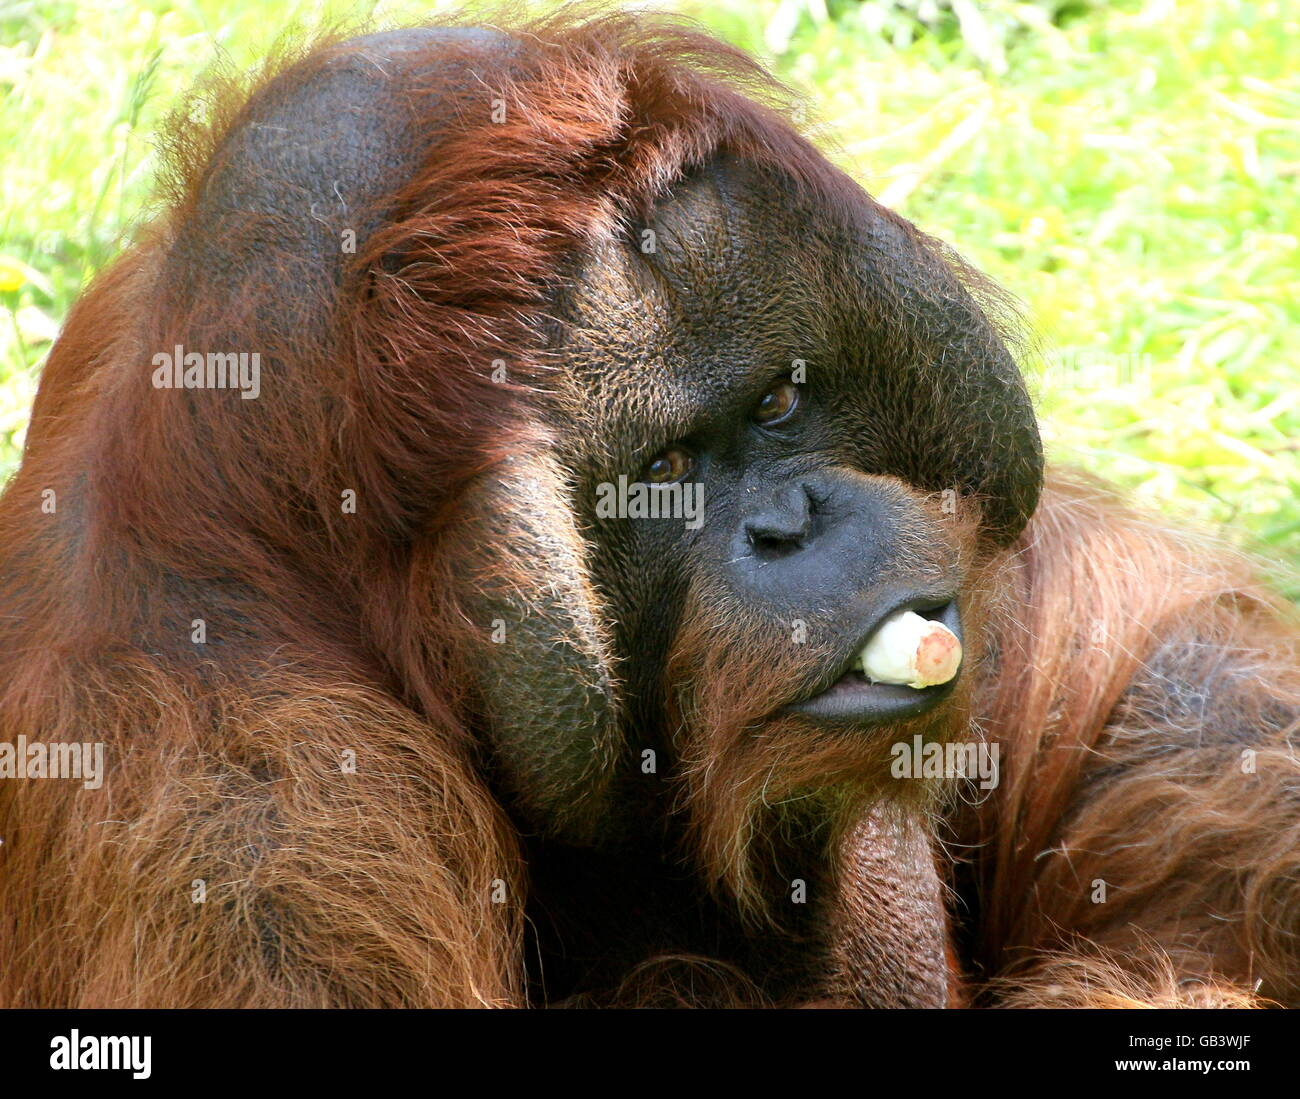 Good-natured  alpha male Bornean orangutan (Pongo pygmaeus) eating Belgian endive - Stock Image